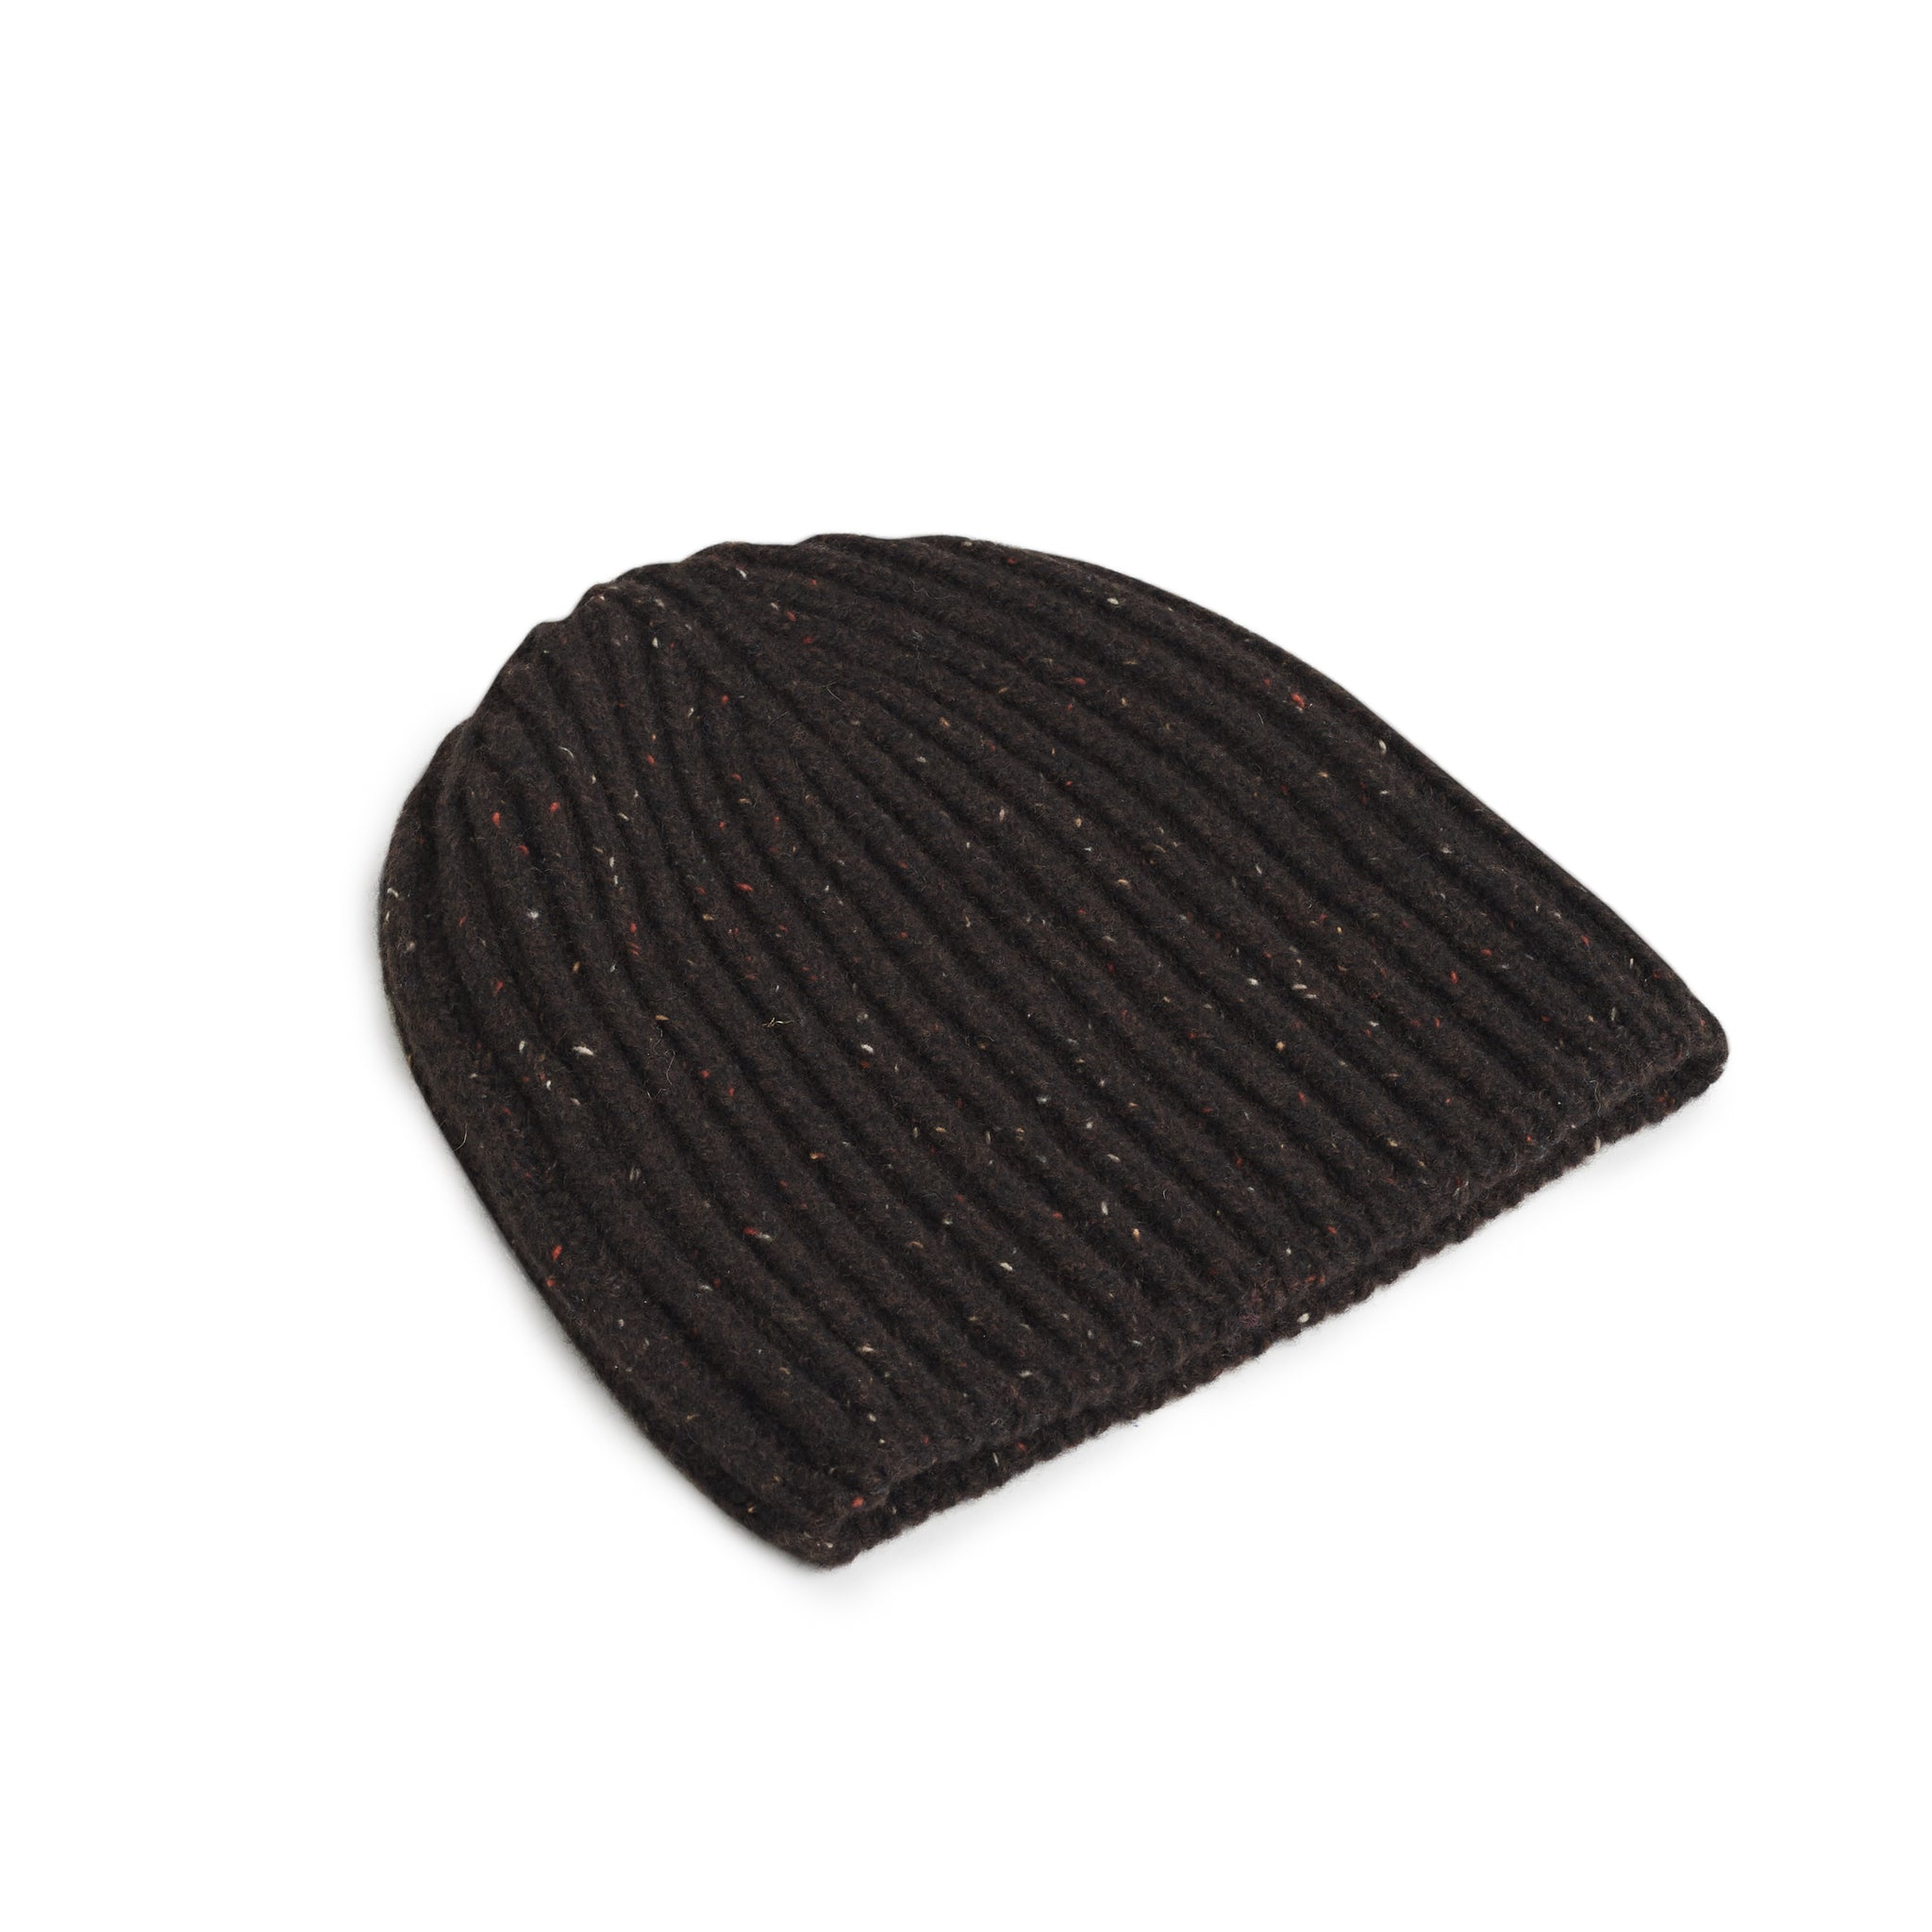 Gorro lana Donegal marrón chocolate